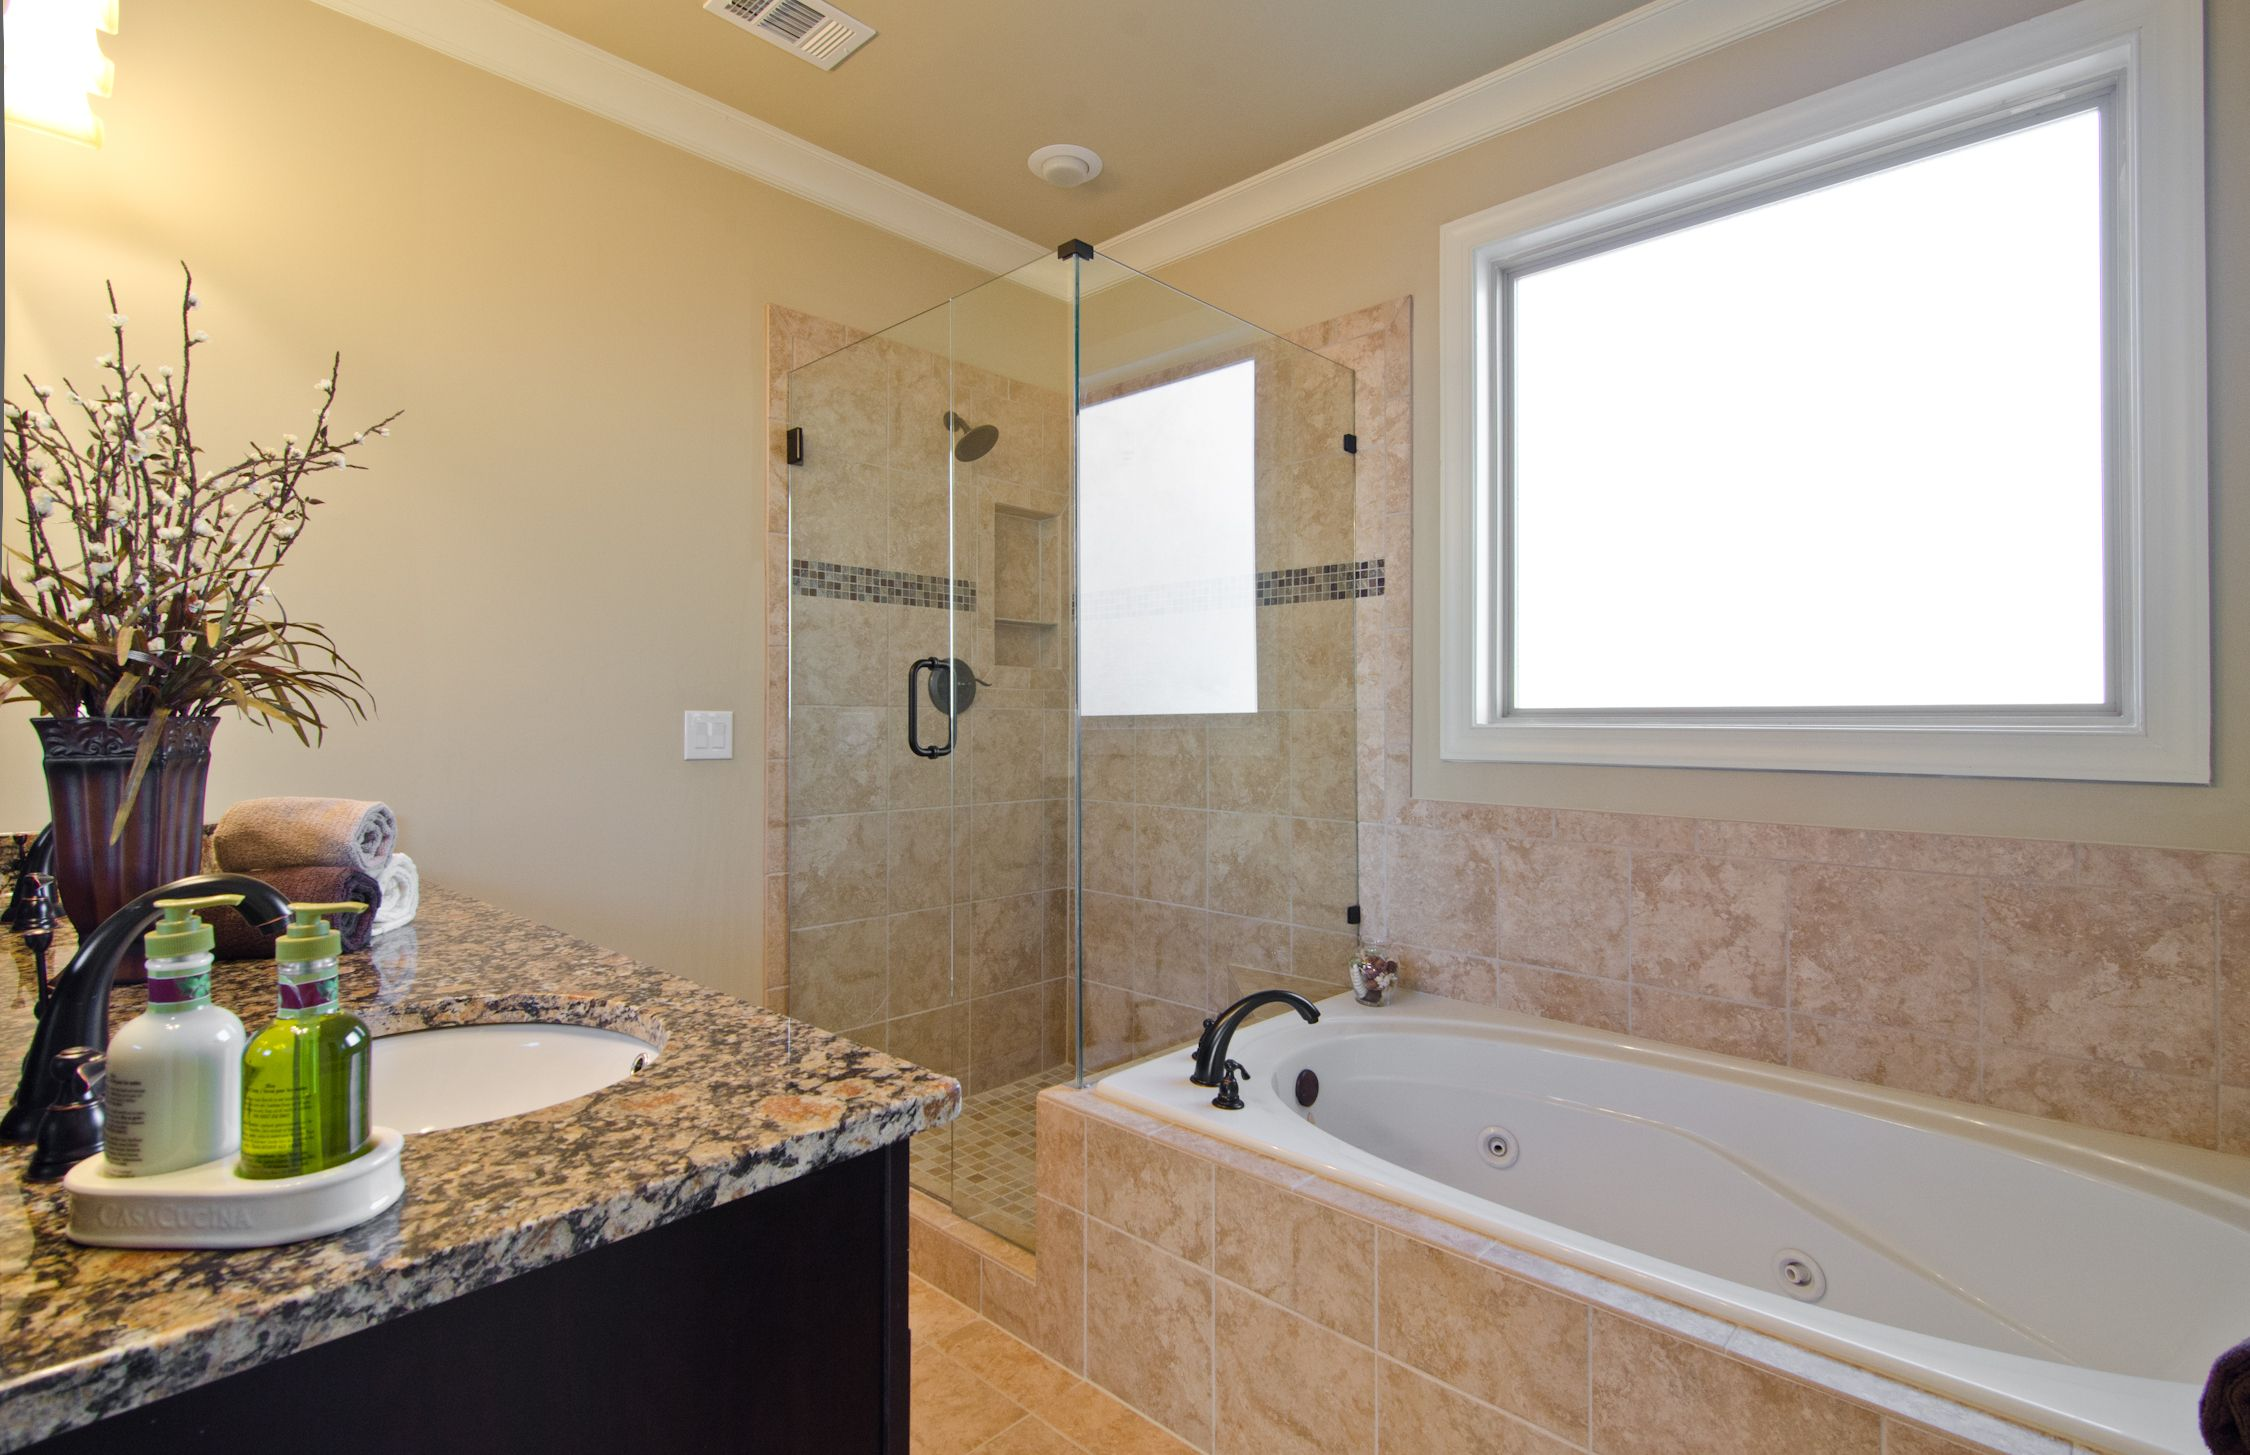 excellent remodeling the bathroom budget friendly diy remodeling with diy  bathroom remodel. Diy Bathroom Remodel  Amazing Diy Bathroom Remodeling Guide Simply